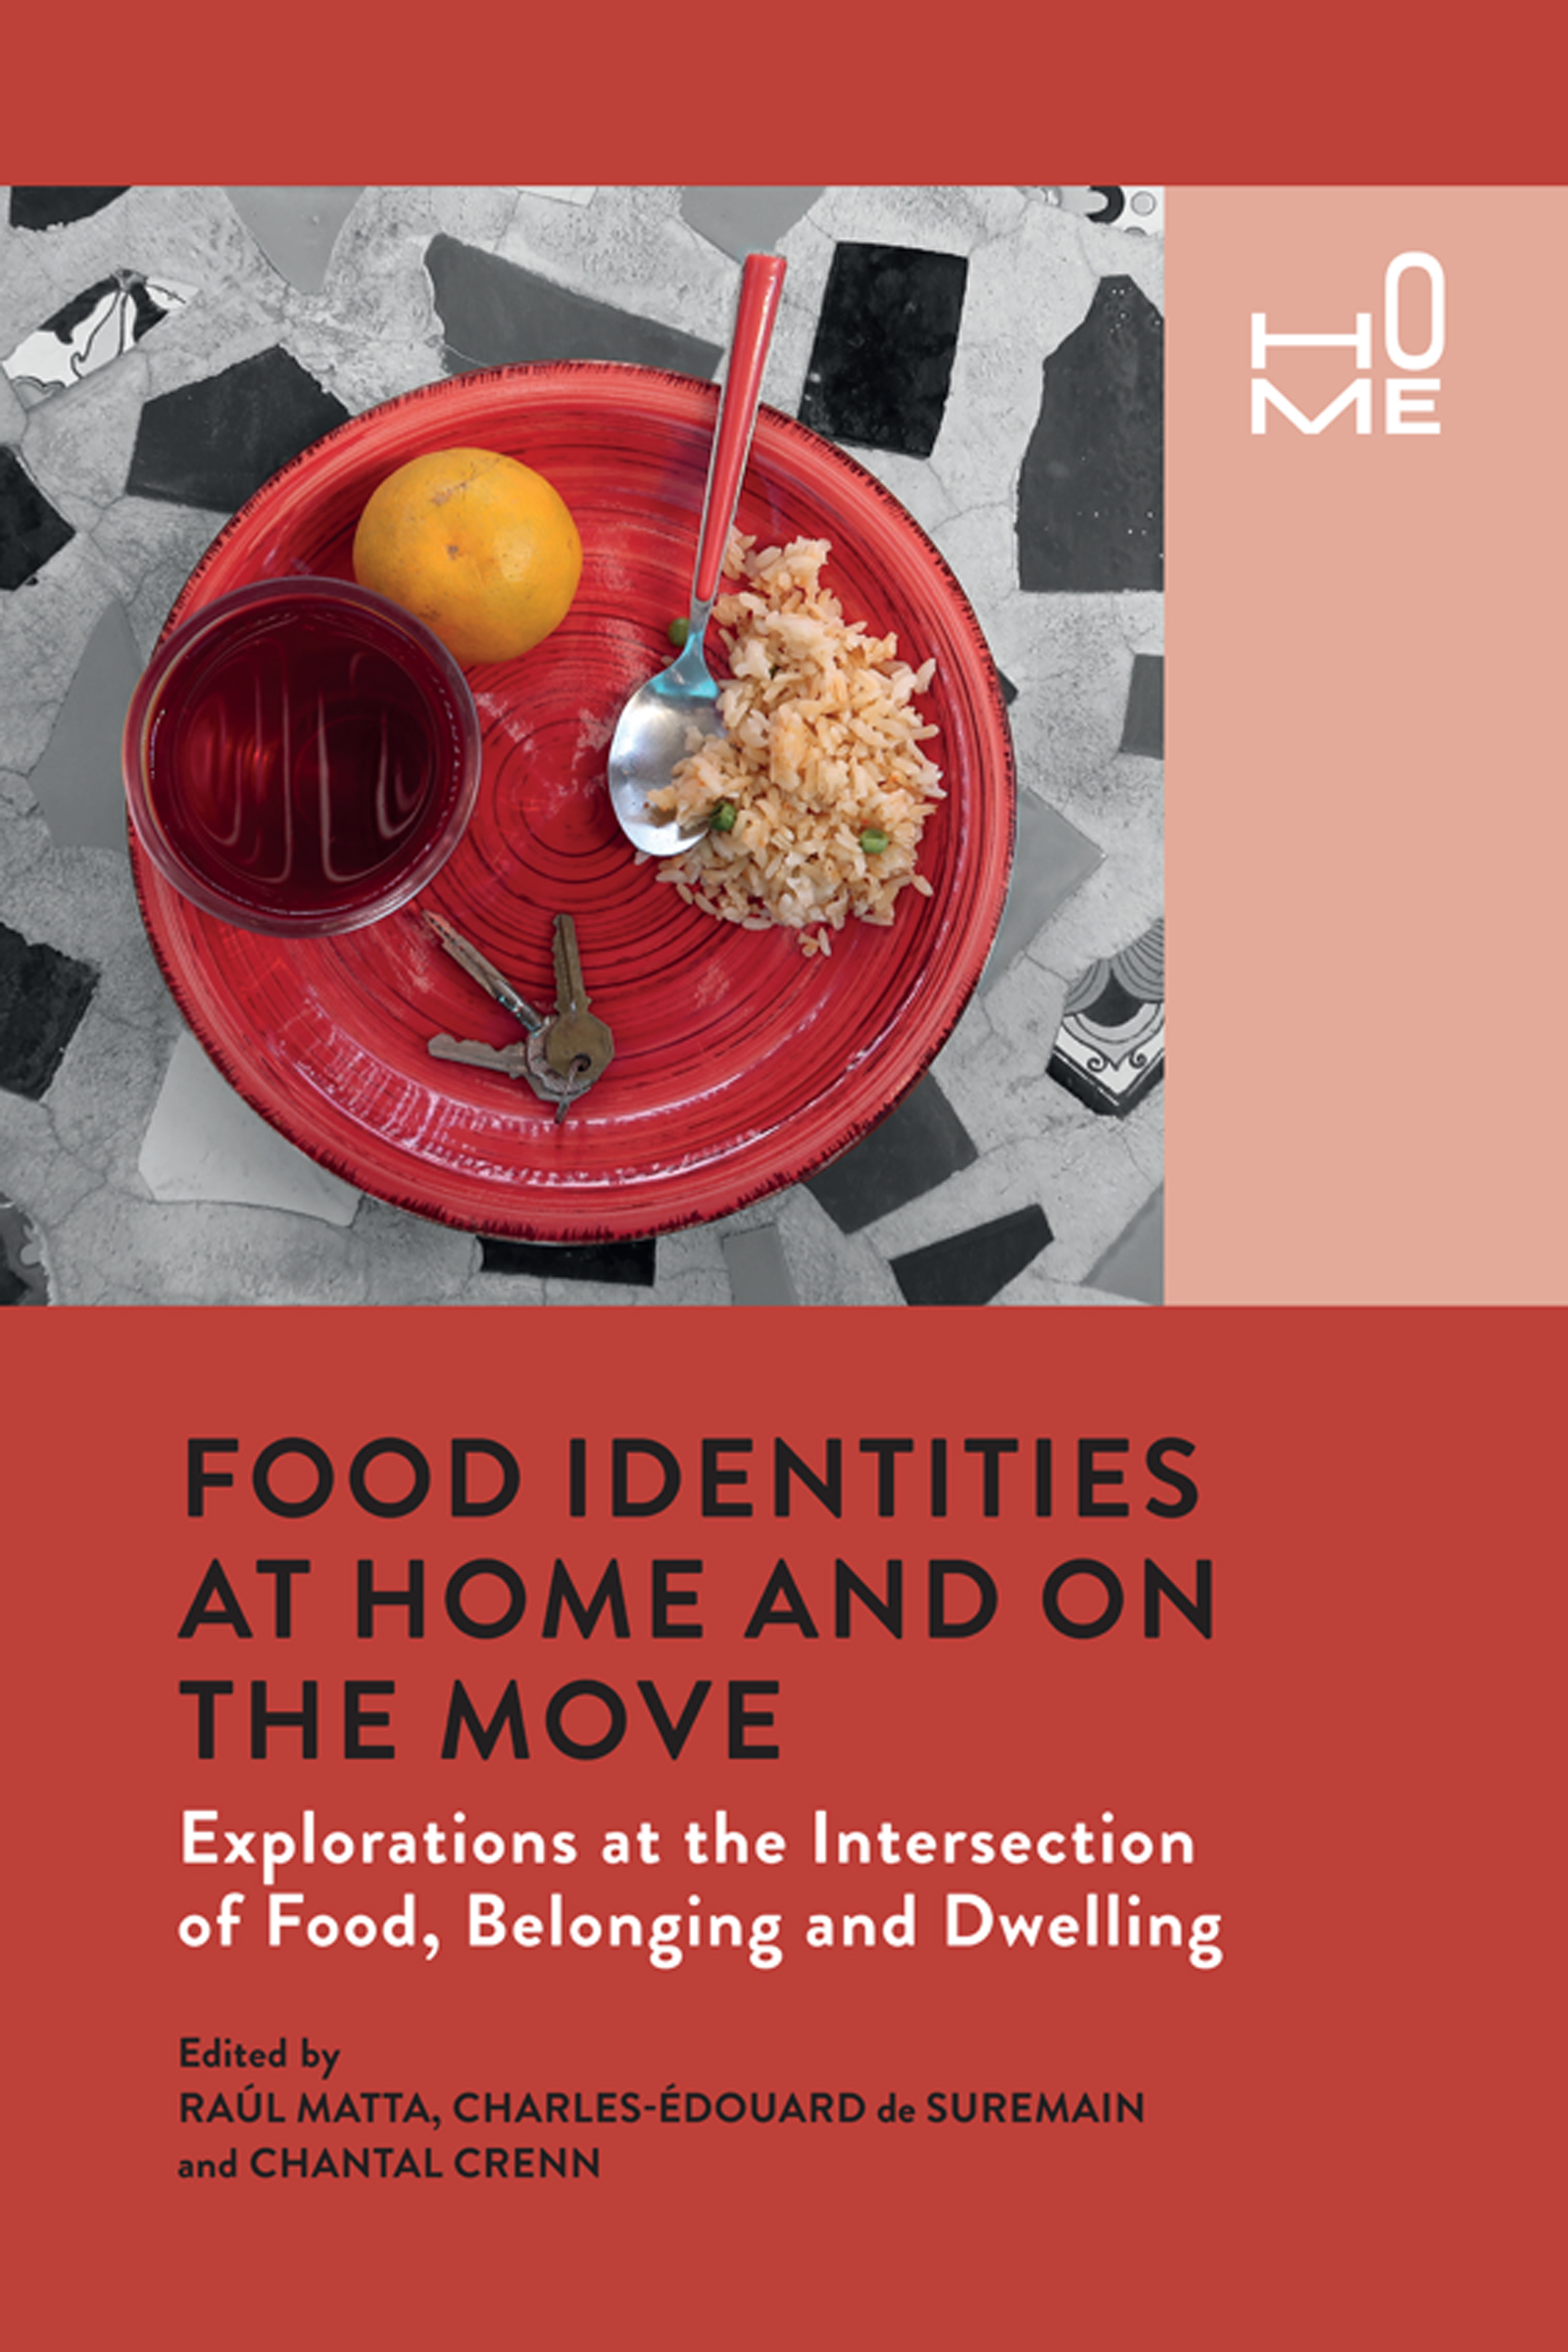 Food Identities at Home and on the Move